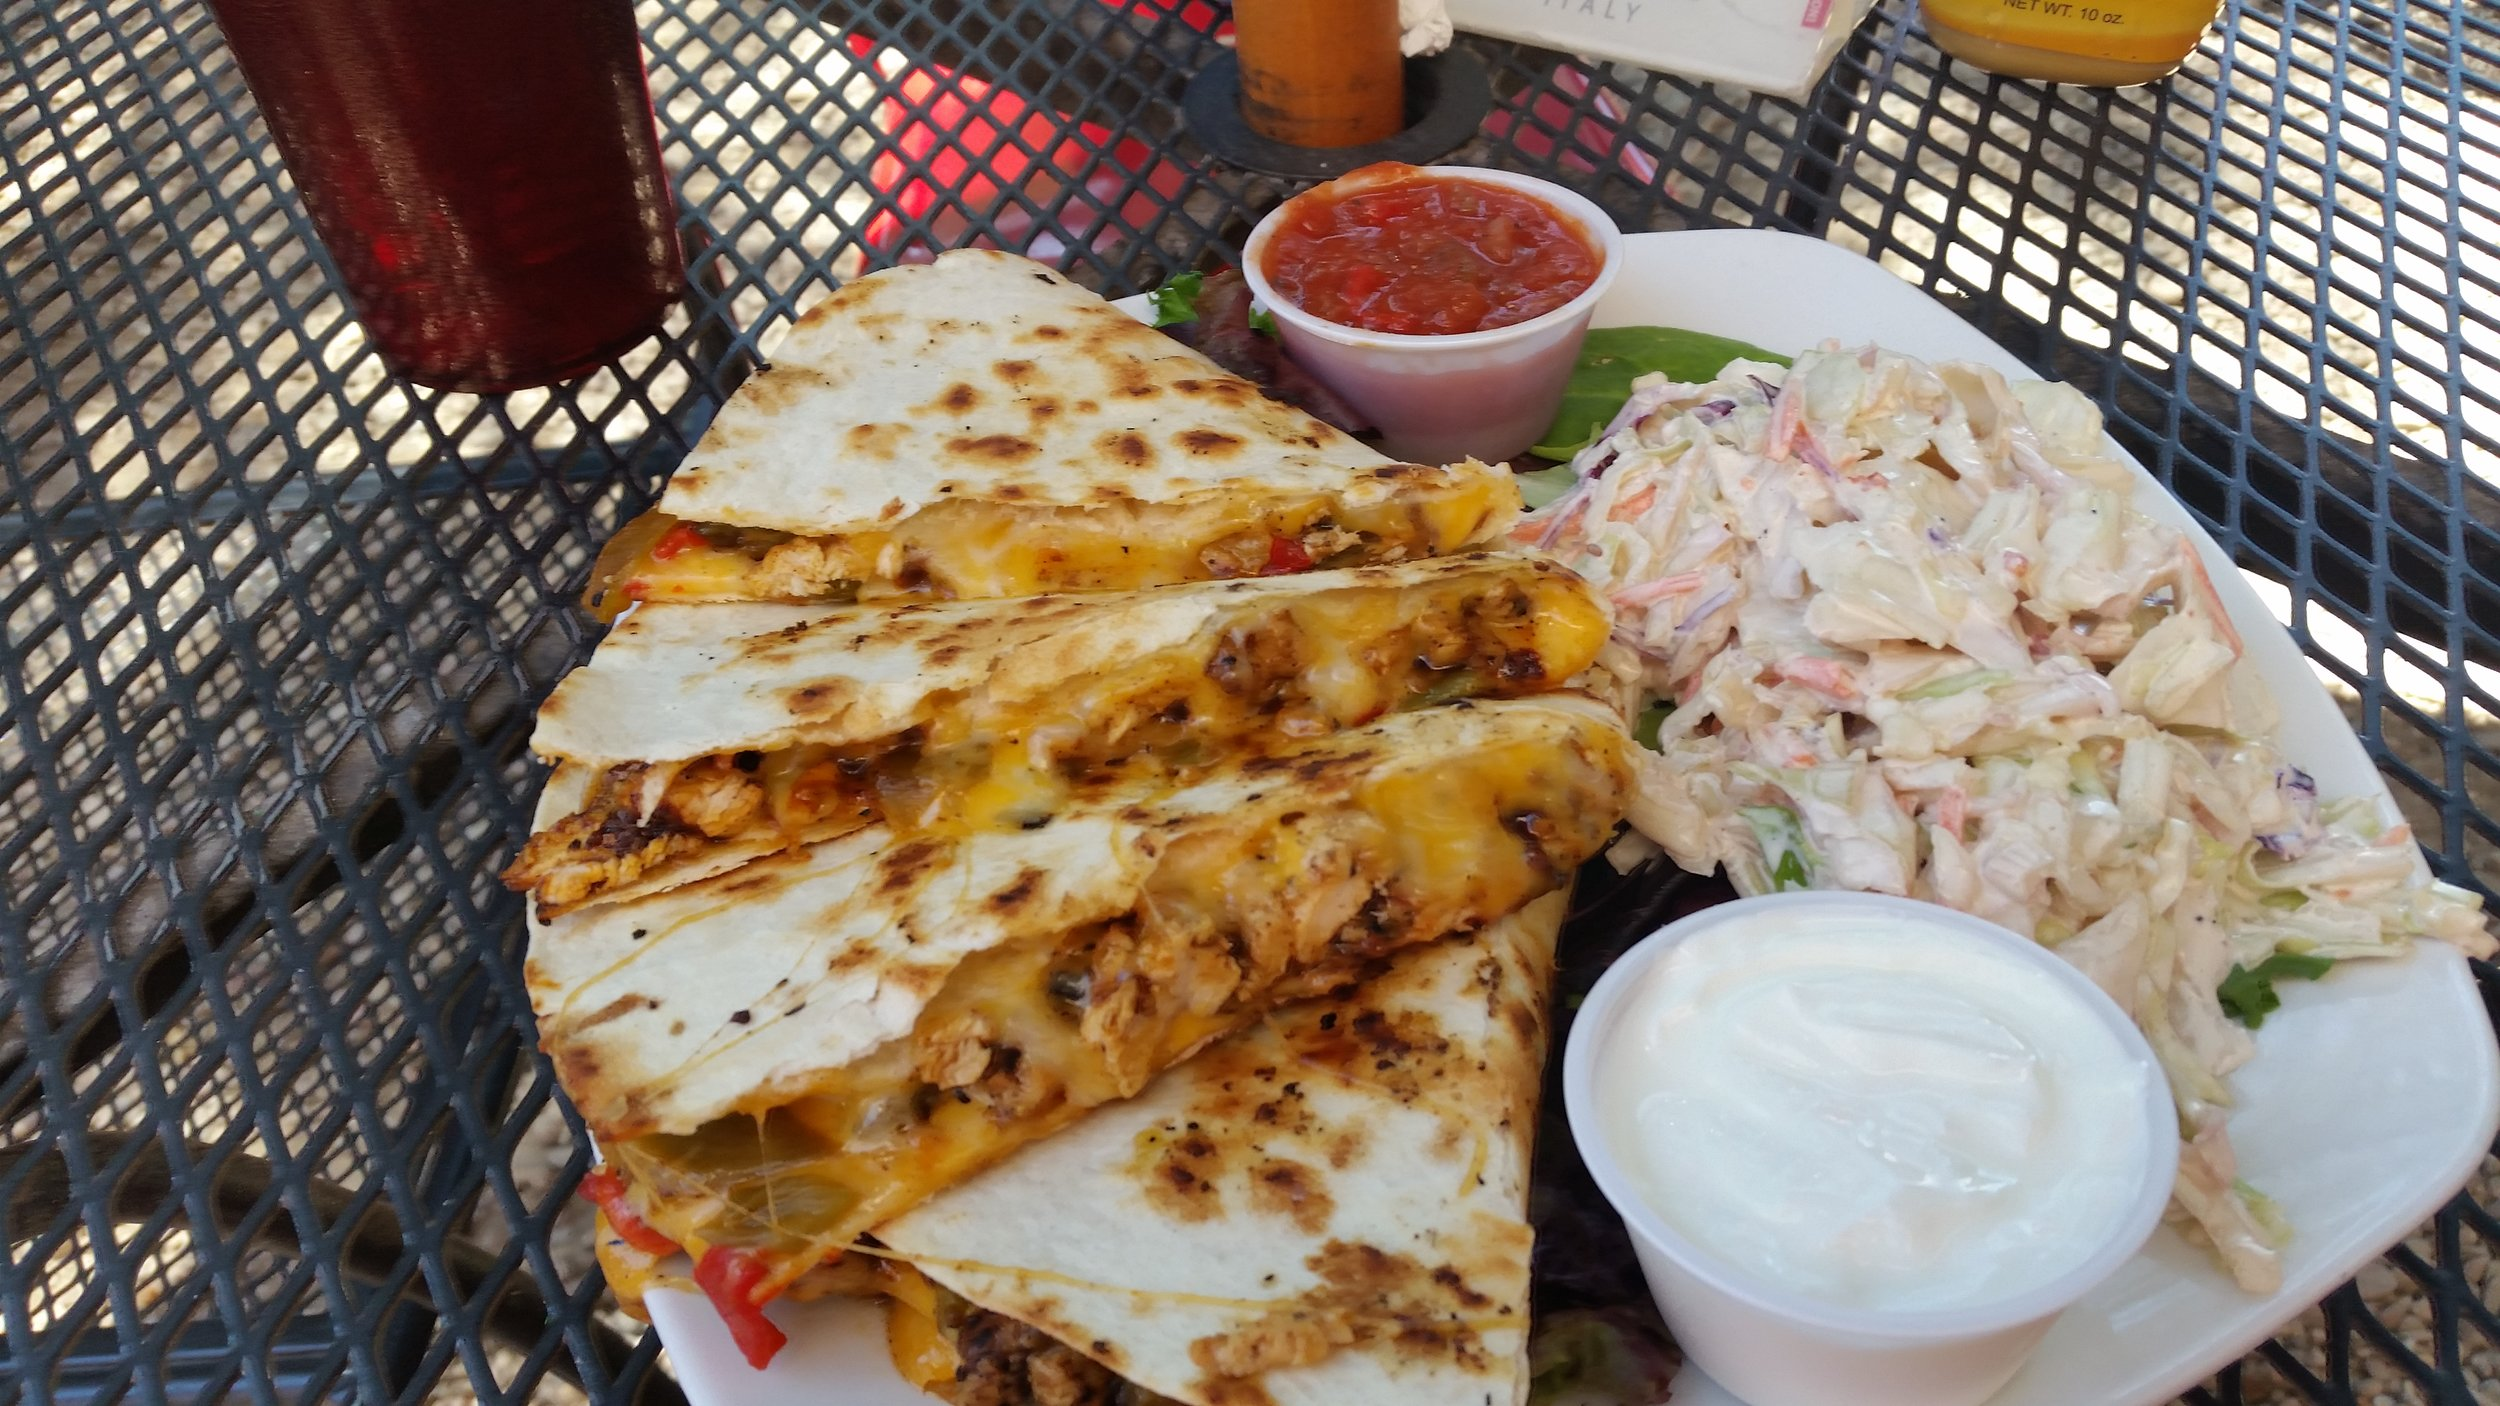 Chicken, green chile and cheese quesadilla with coleslaw at The Hollar in beautiful downtown Madrid